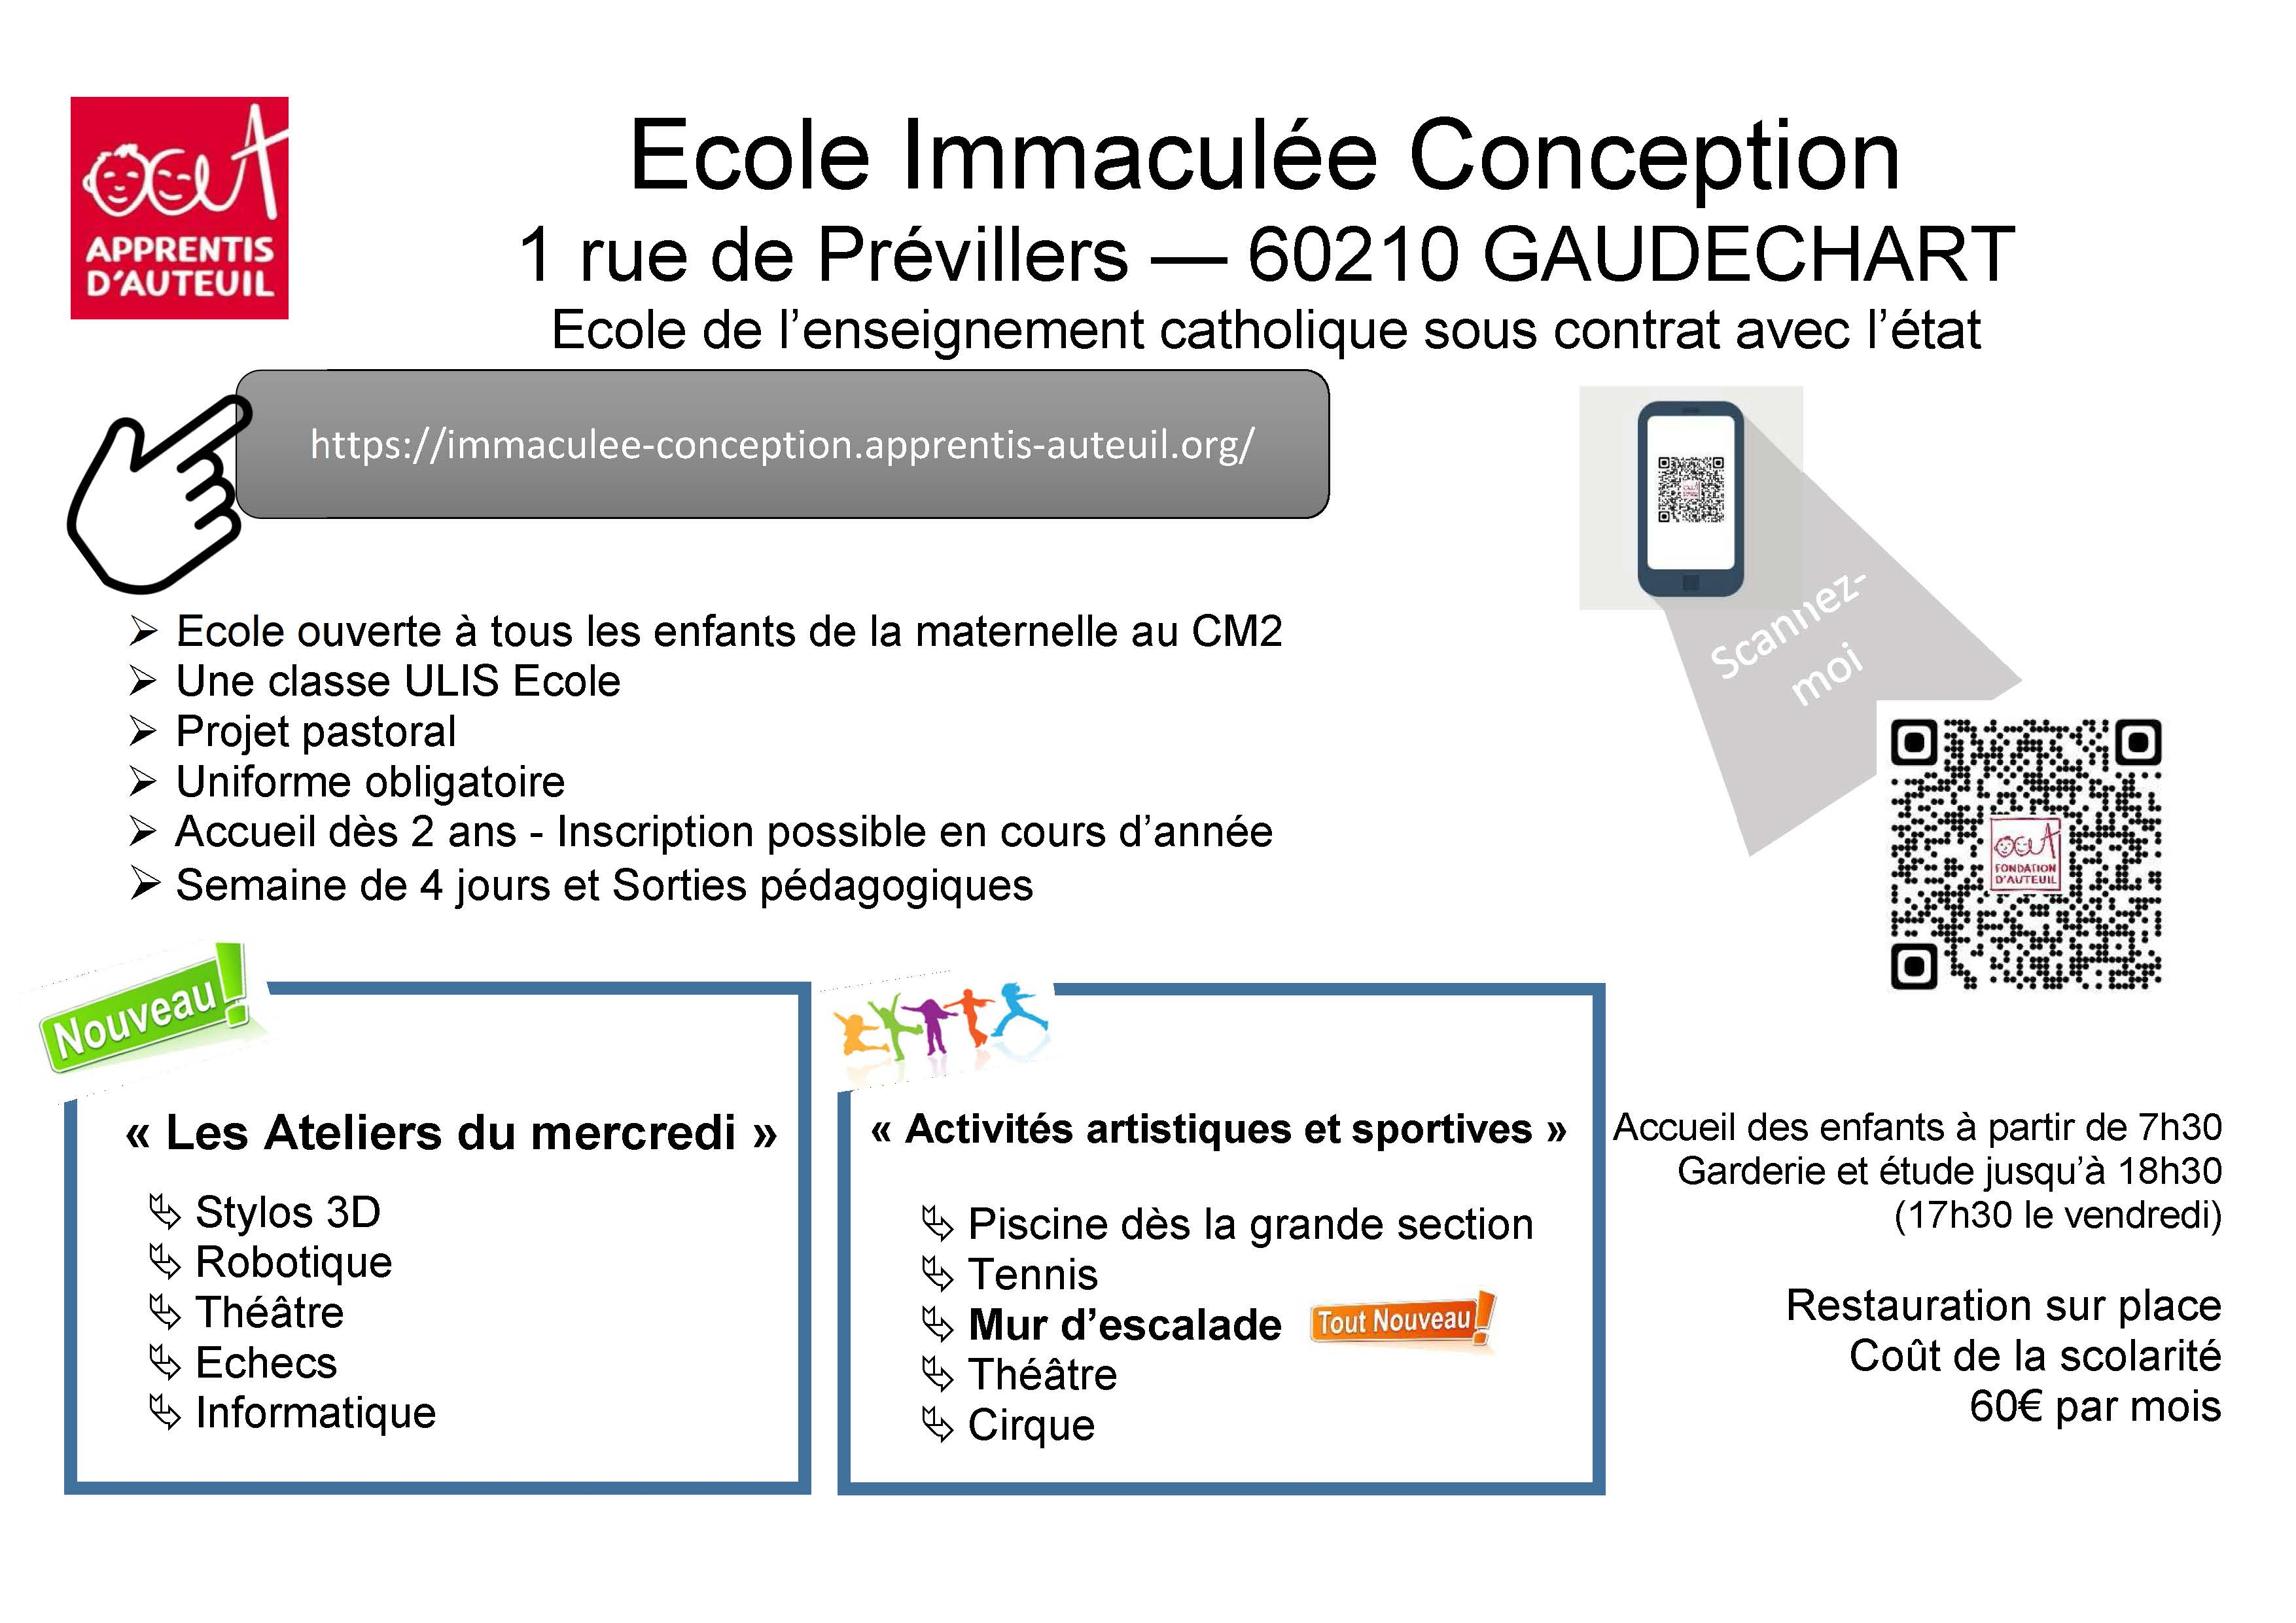 verso flyer Ecole Immaculée Conception